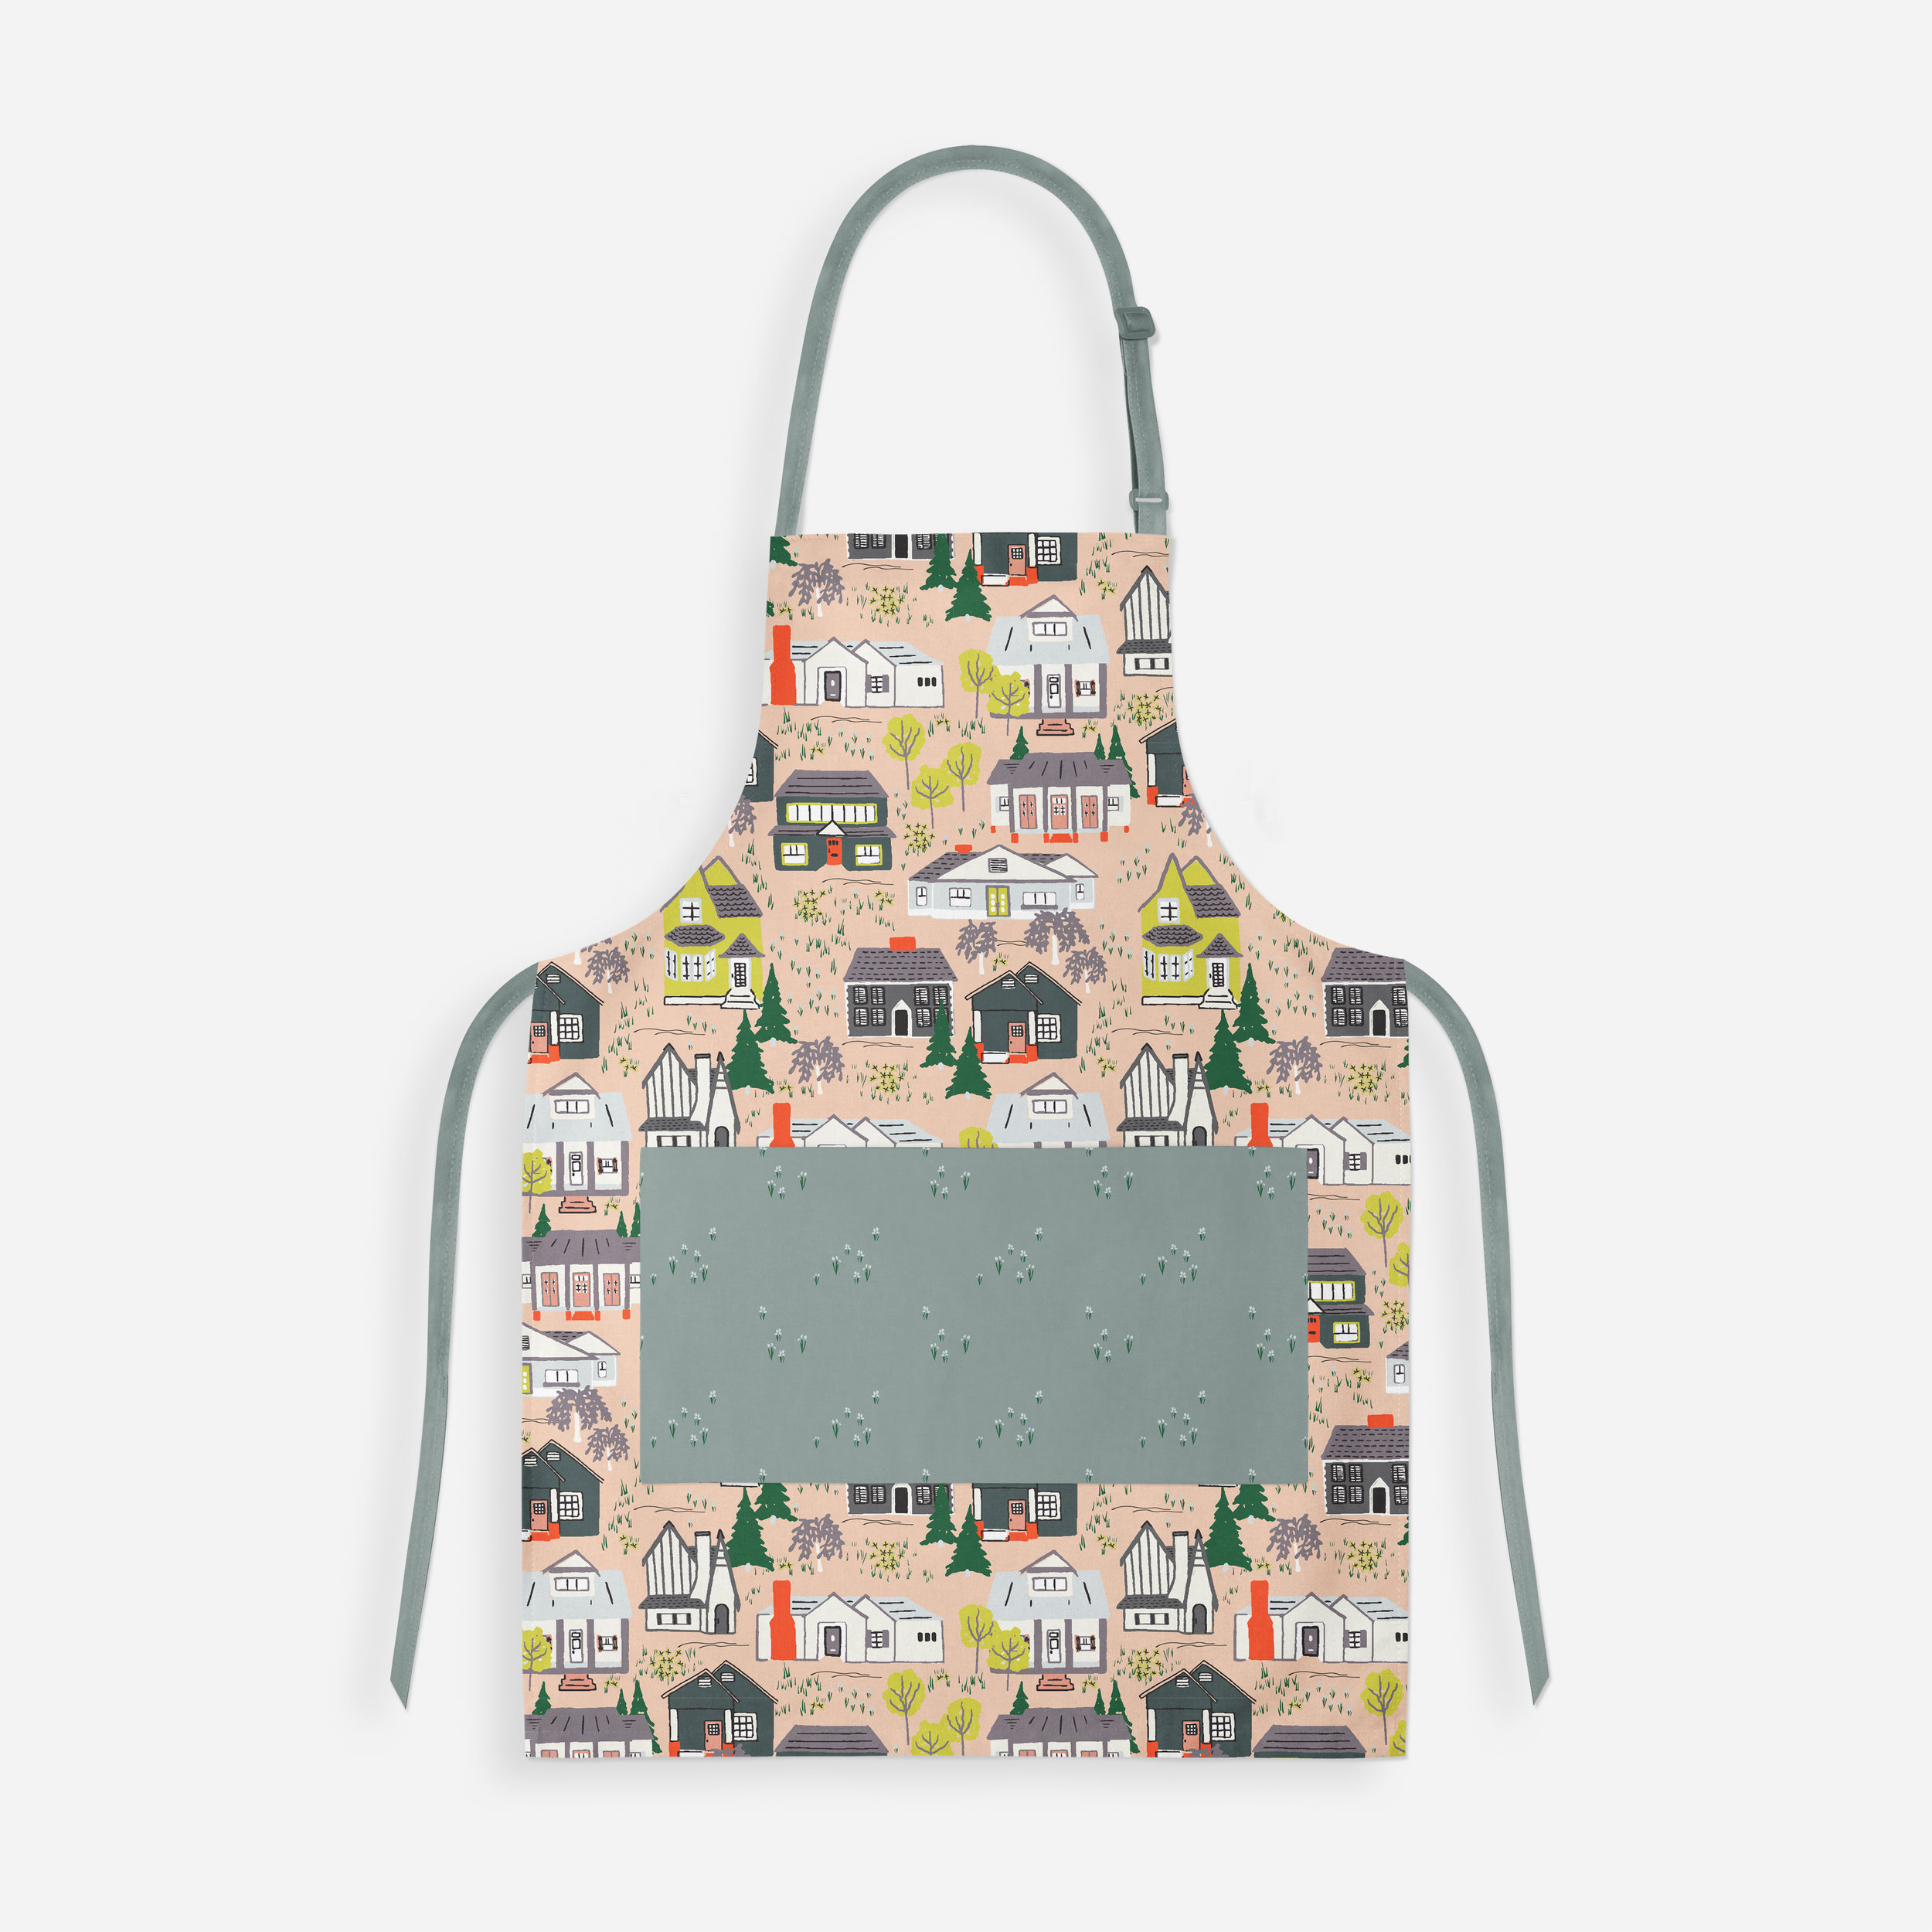 surface pattern design by Hope Johnson_Mayberry Collection_aprons and home wares.jpg